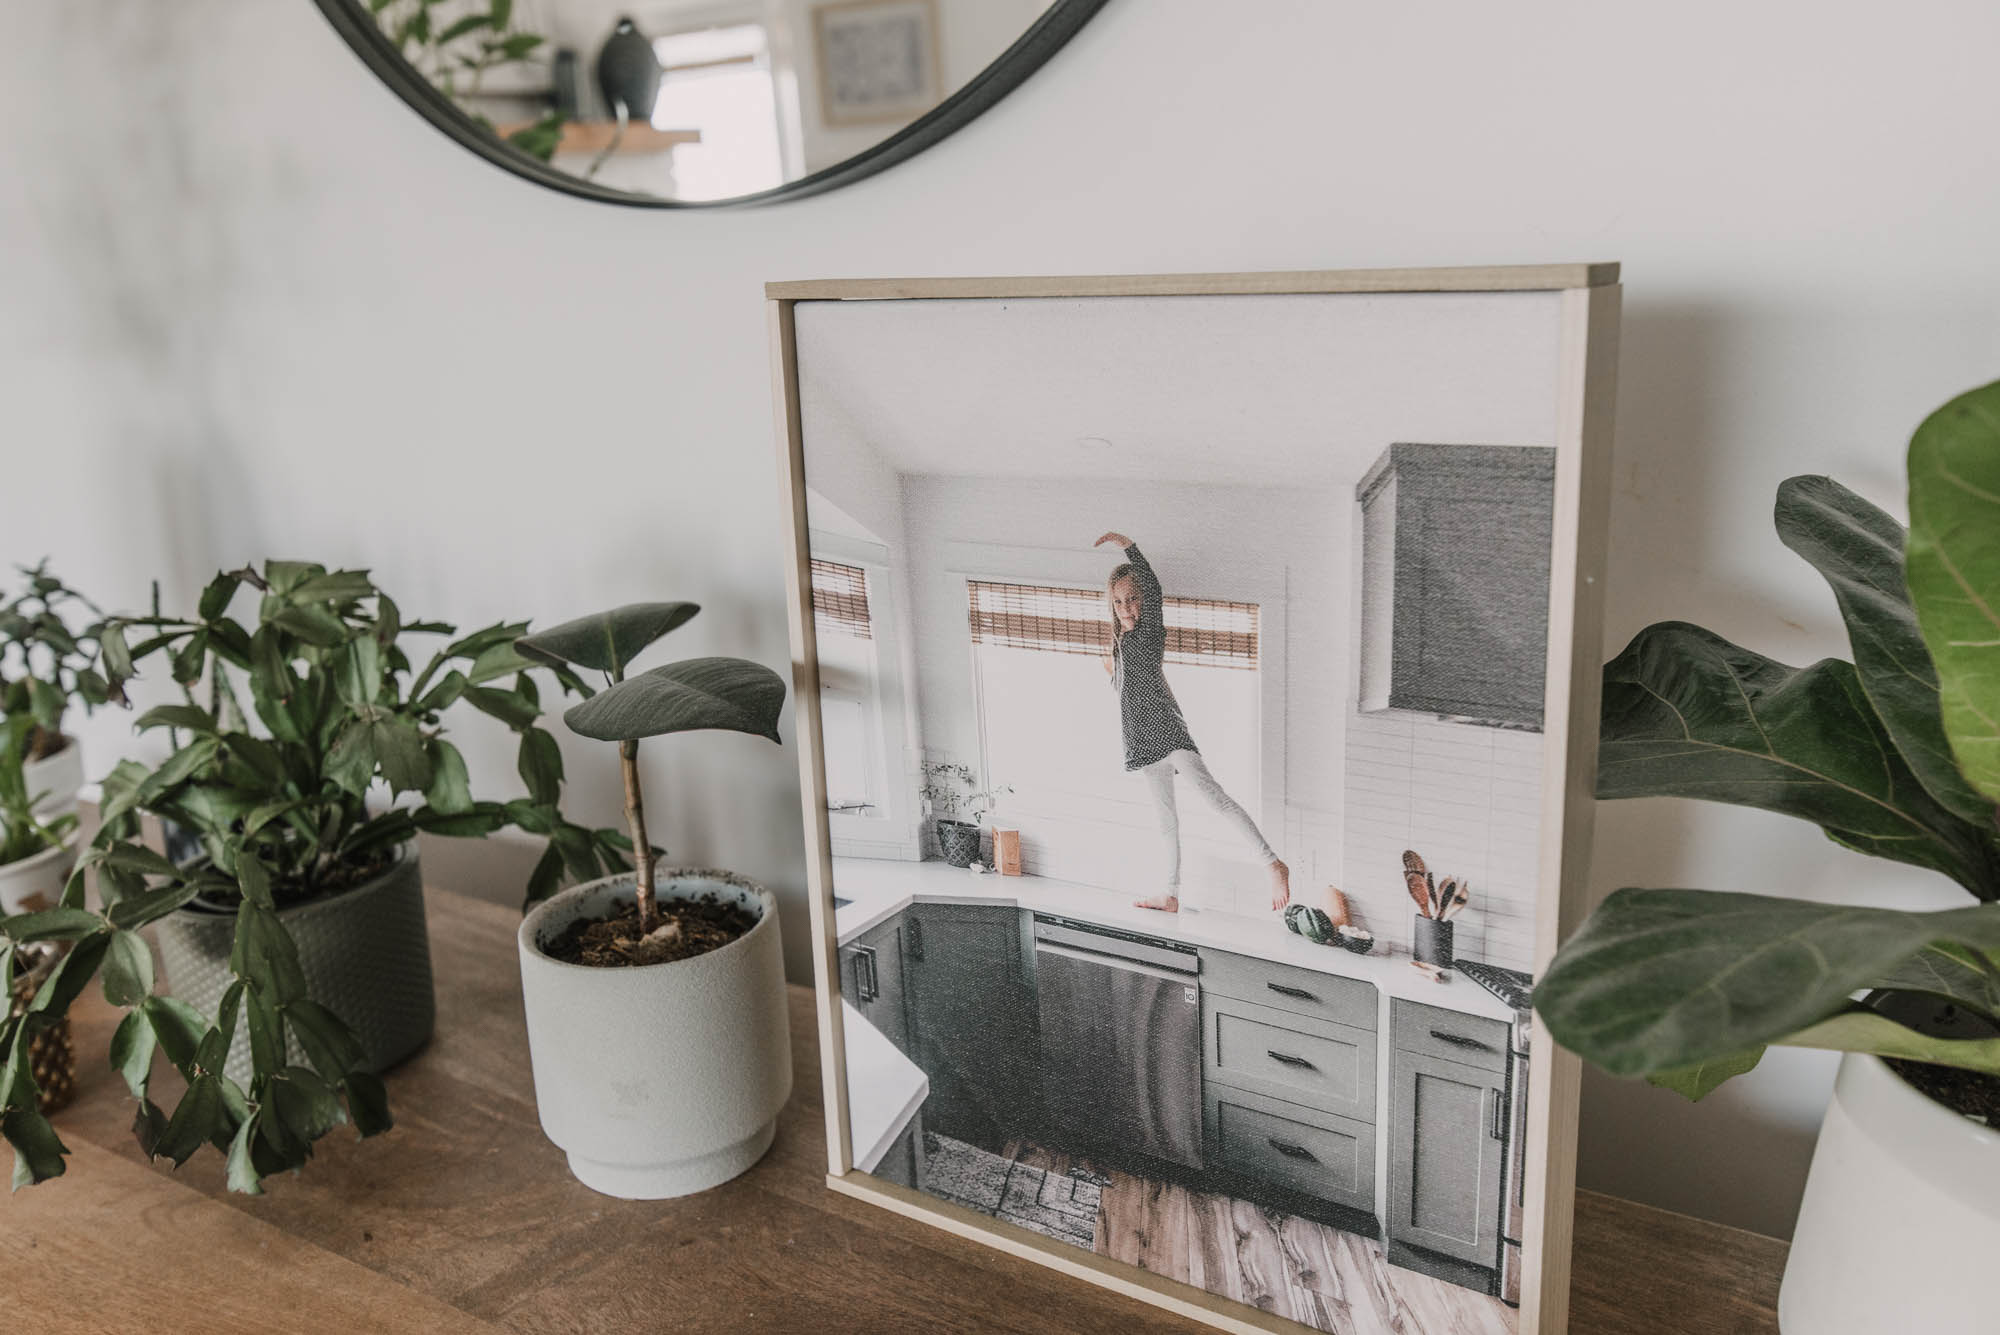 The easiest way to frame a canvas